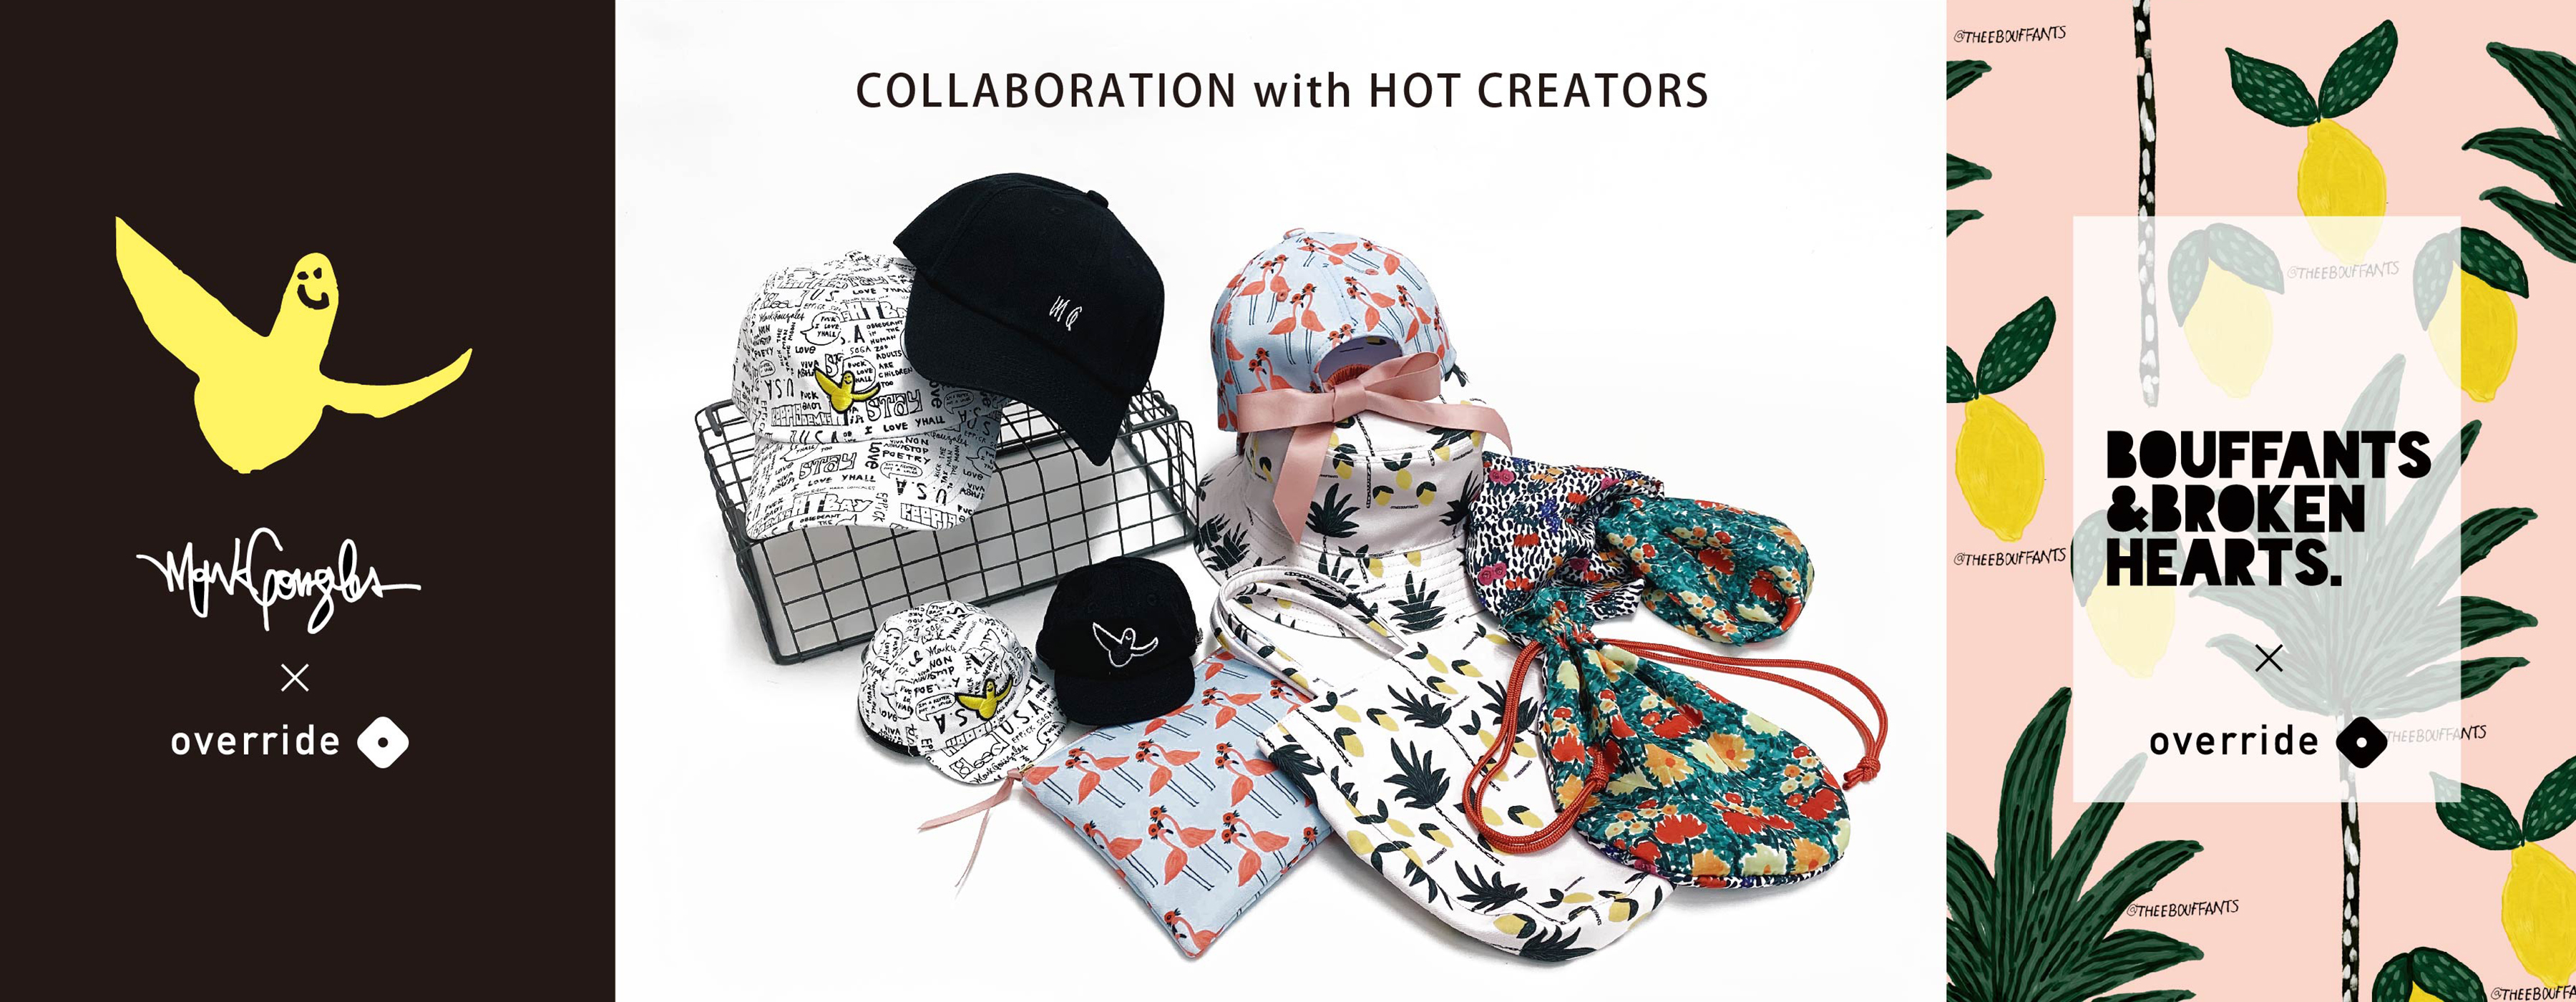 Collaboration with hot creators; Mark Gonzales and BOUFFANTS & BROKEN HEARTS(Kendra Dandy)